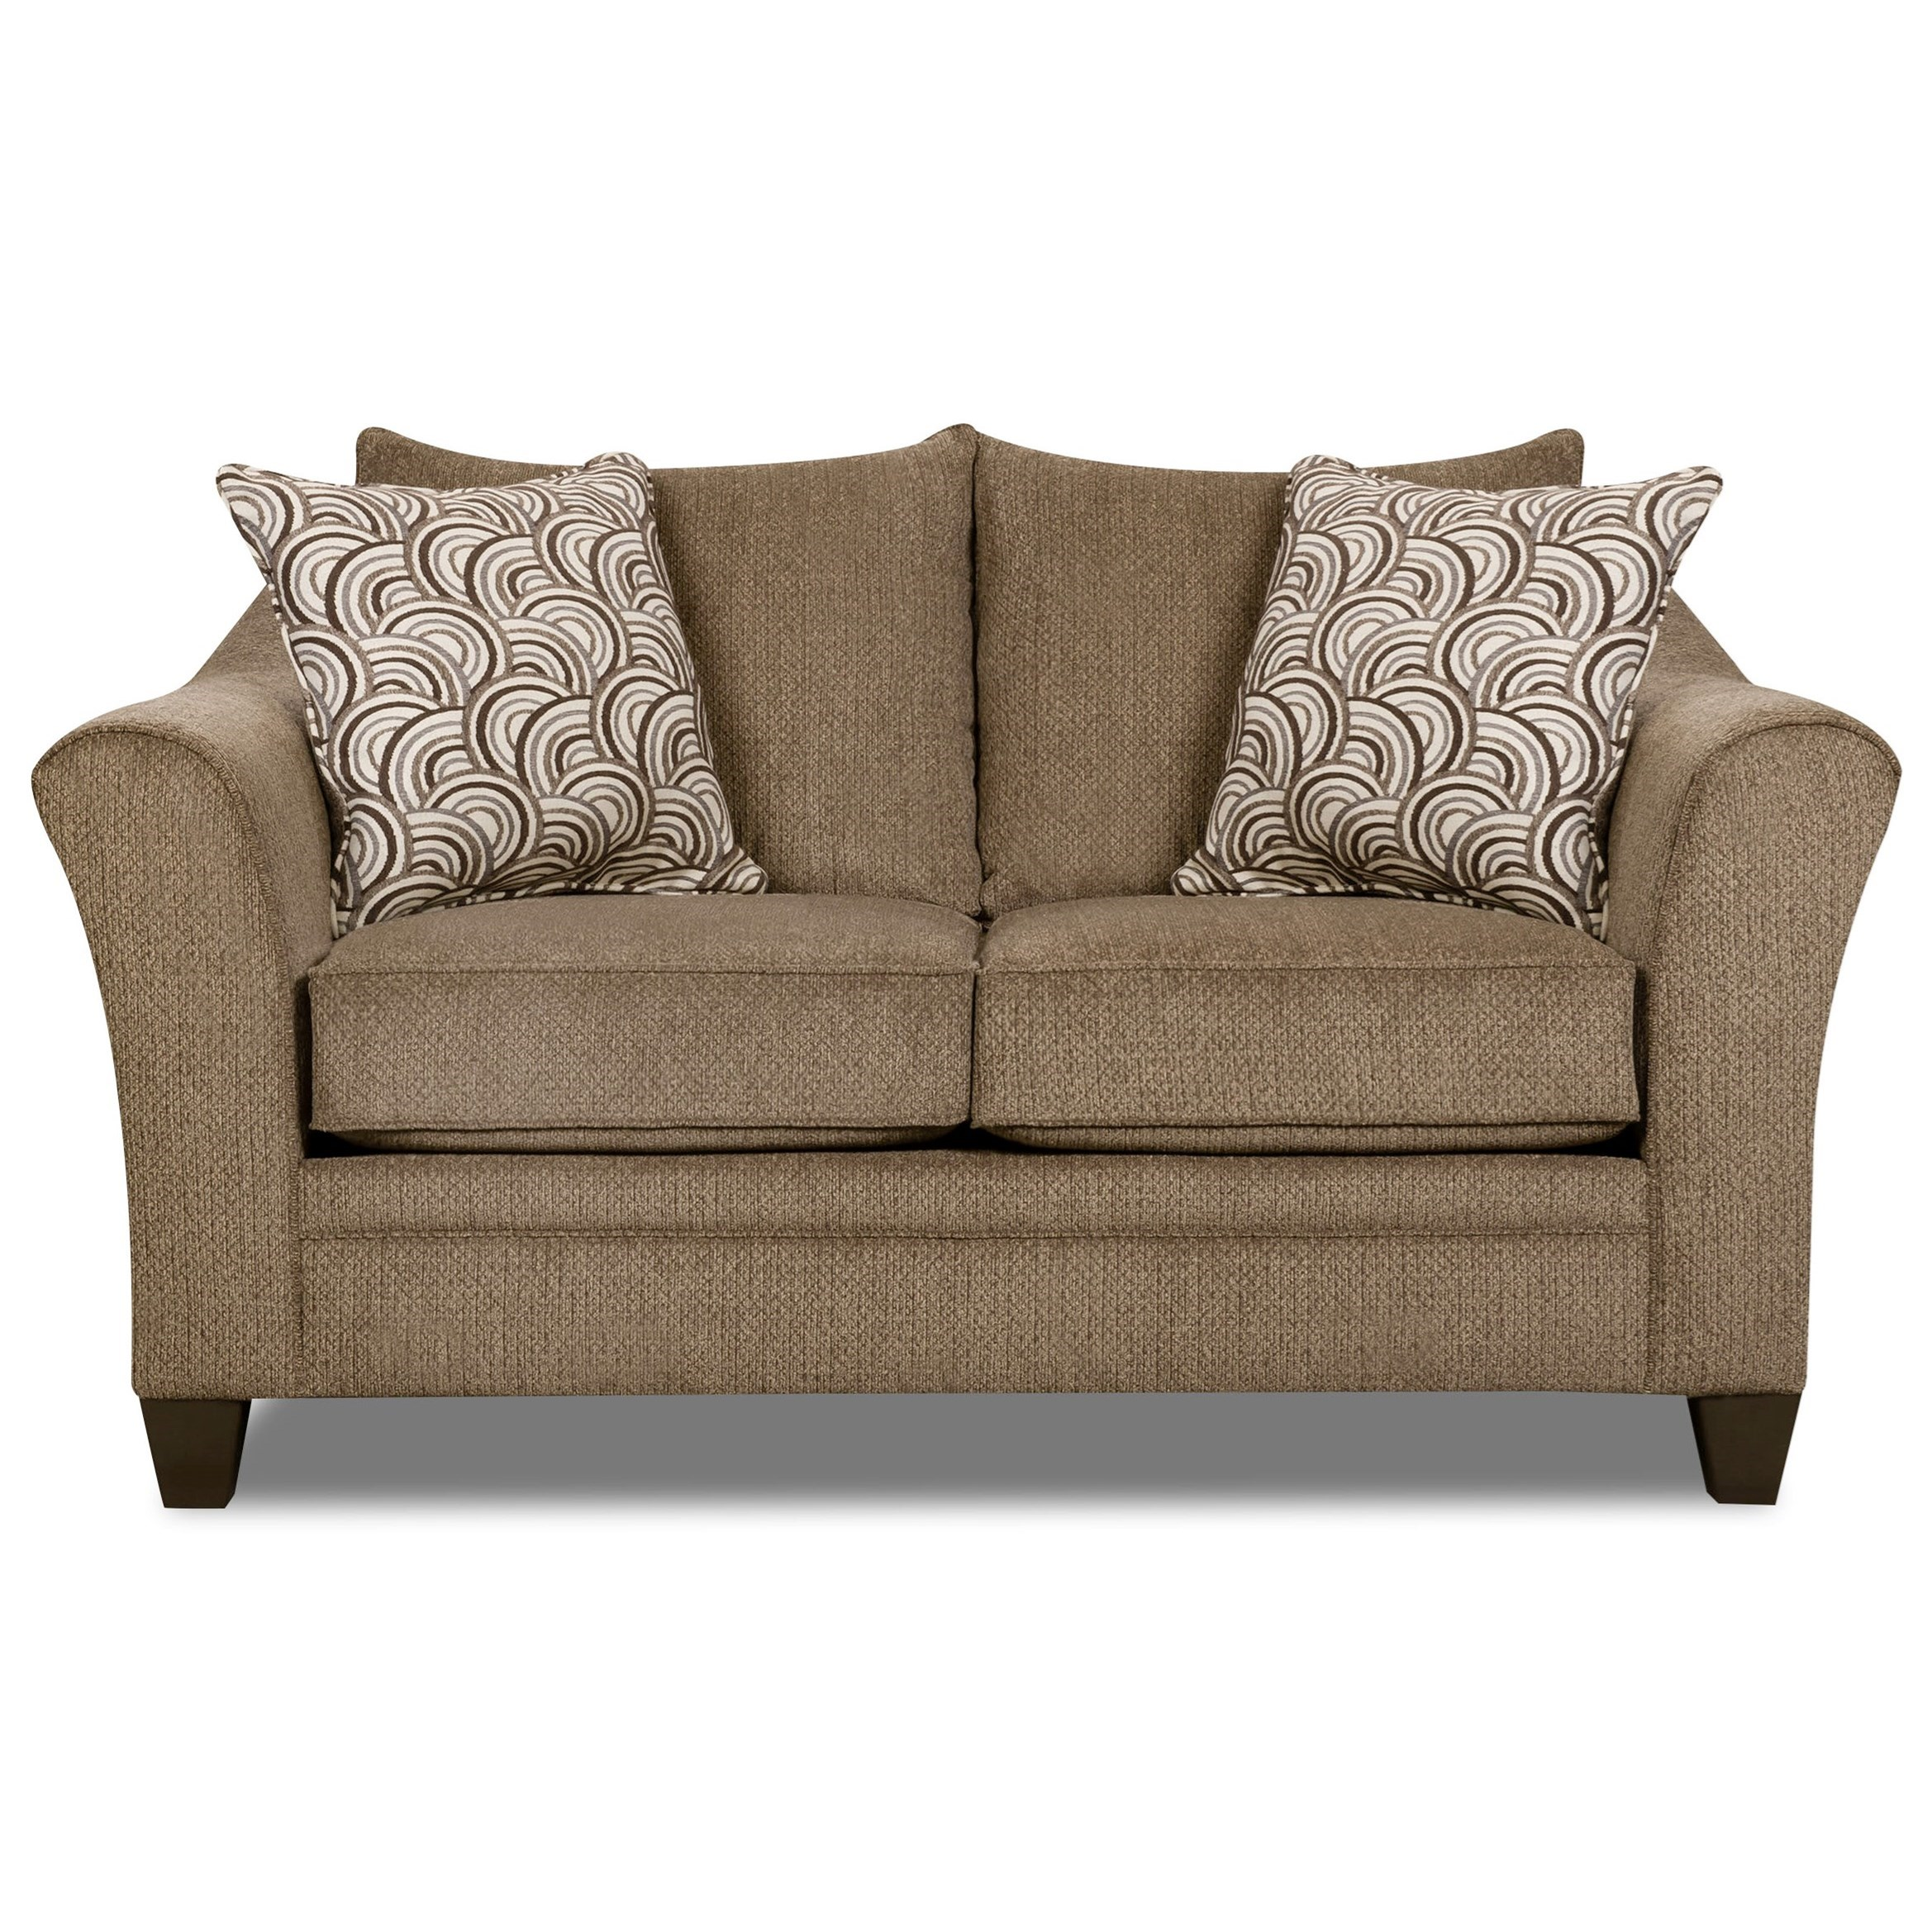 Kiara Transitional Loveseat by Umber at EFO Furniture Outlet